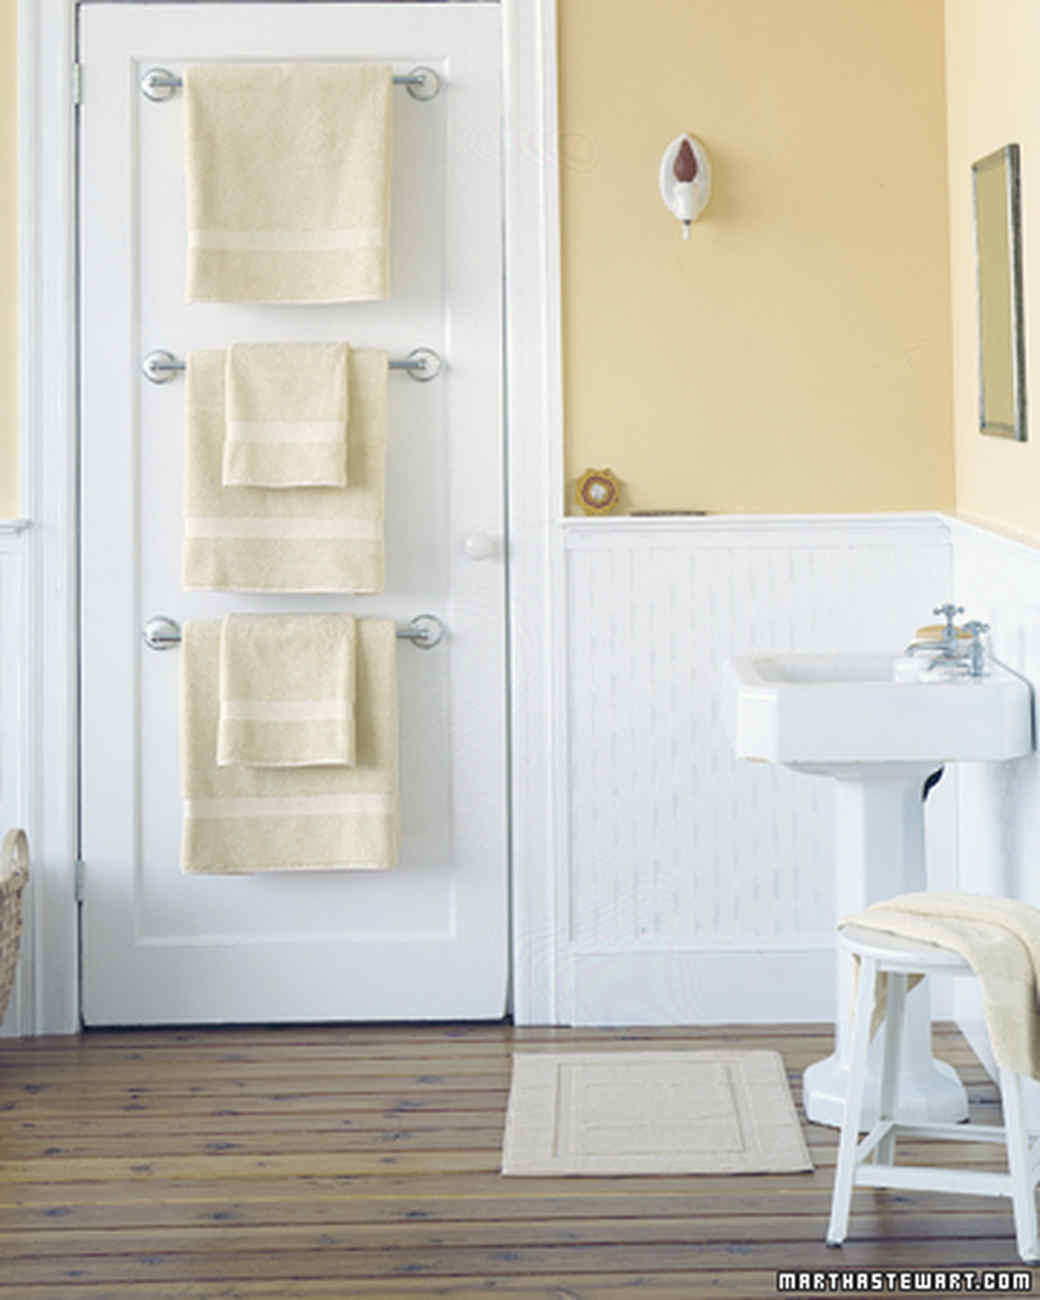 How to make a bathroom organizer for yourself